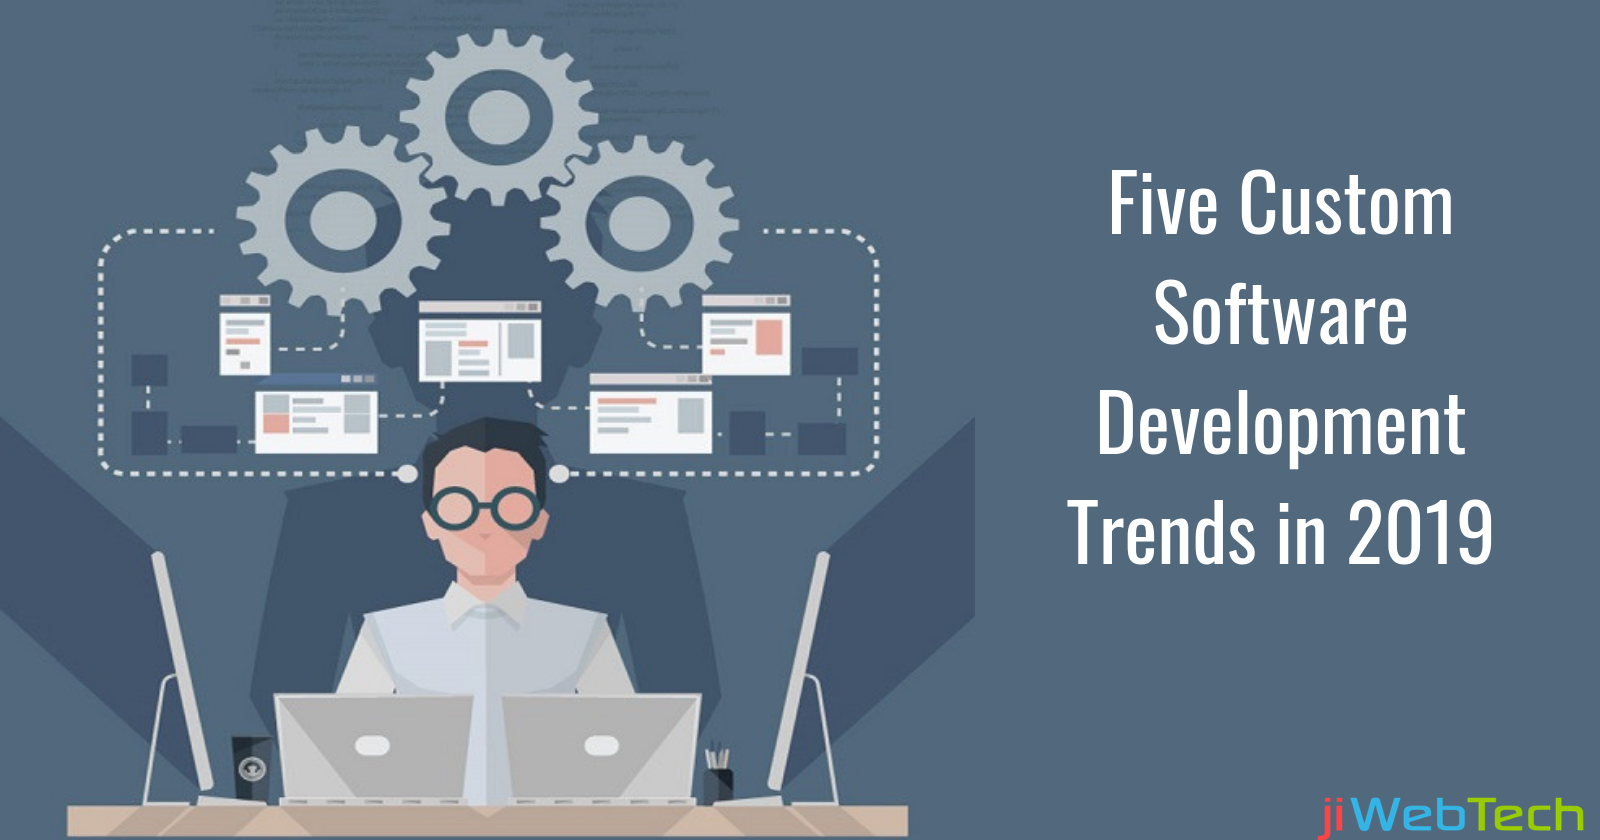 Custom Software Development Trends For Companies in 2019